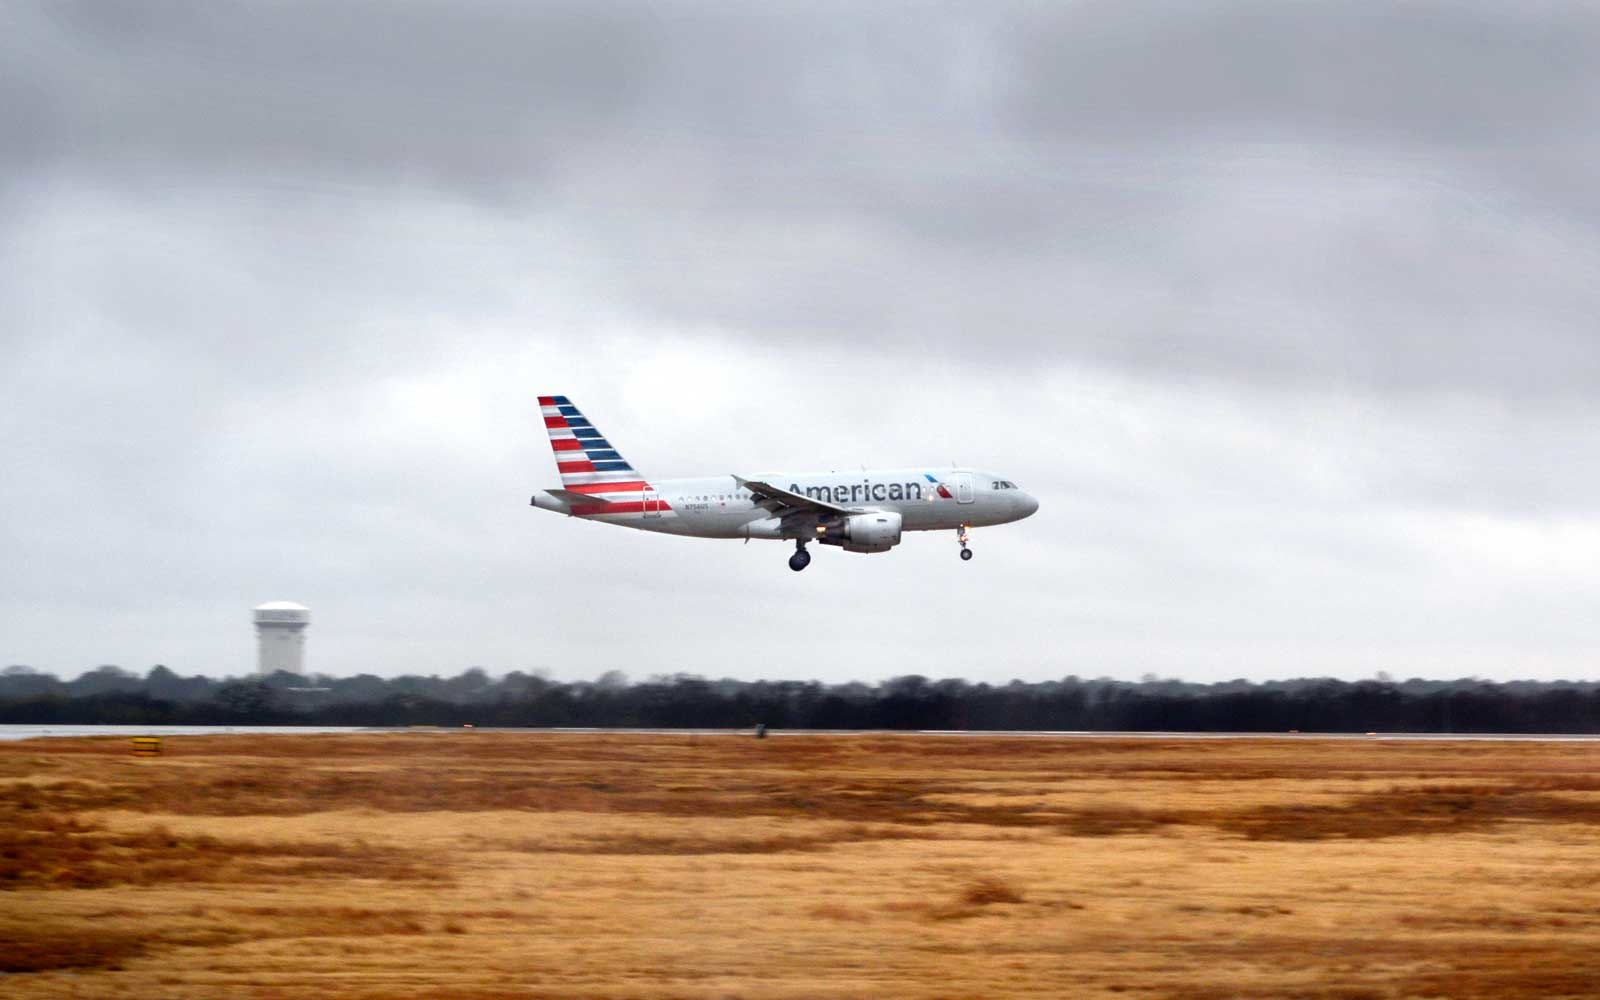 American Airlines plane makes emergency landing after striking goose mid-air